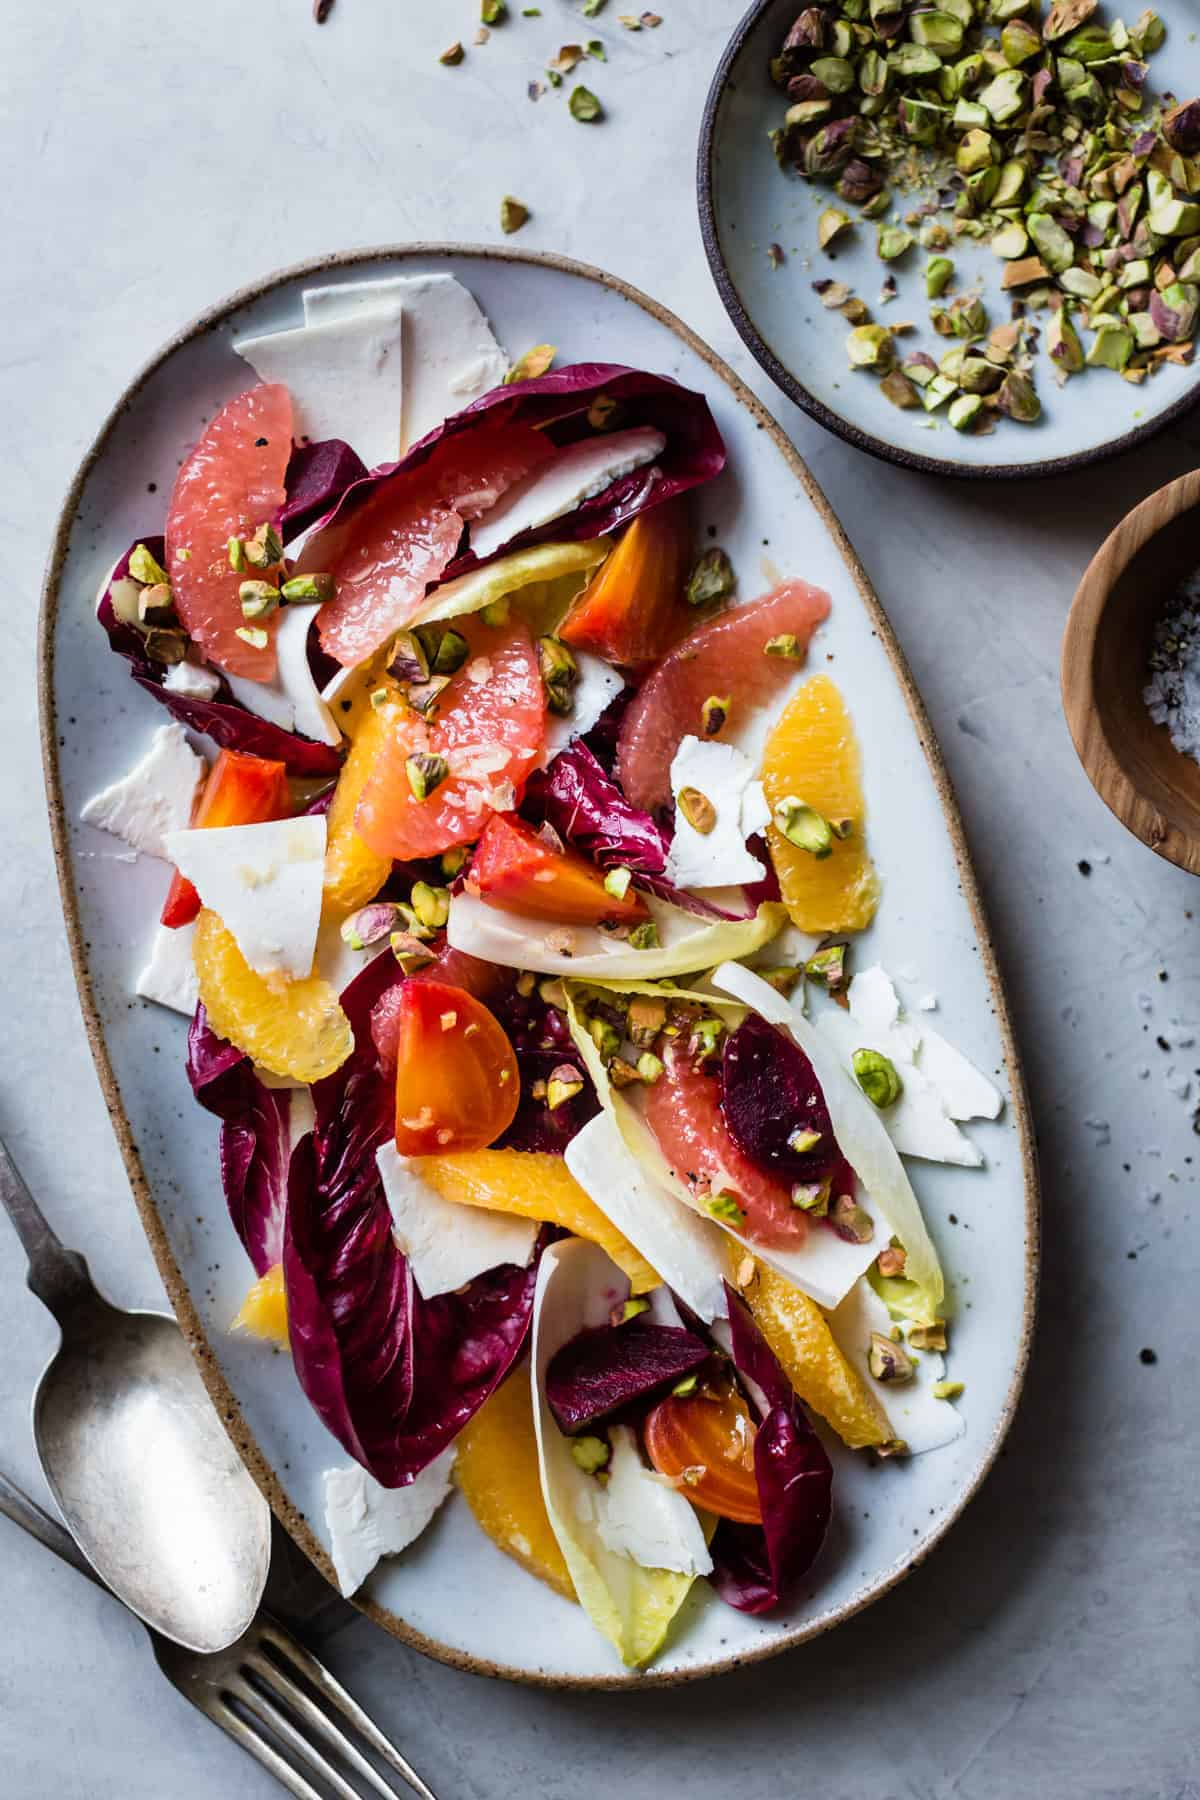 fresh and delicious Beet, Citrus, & Chicory Salad with Ricotta Salata and Pistachios